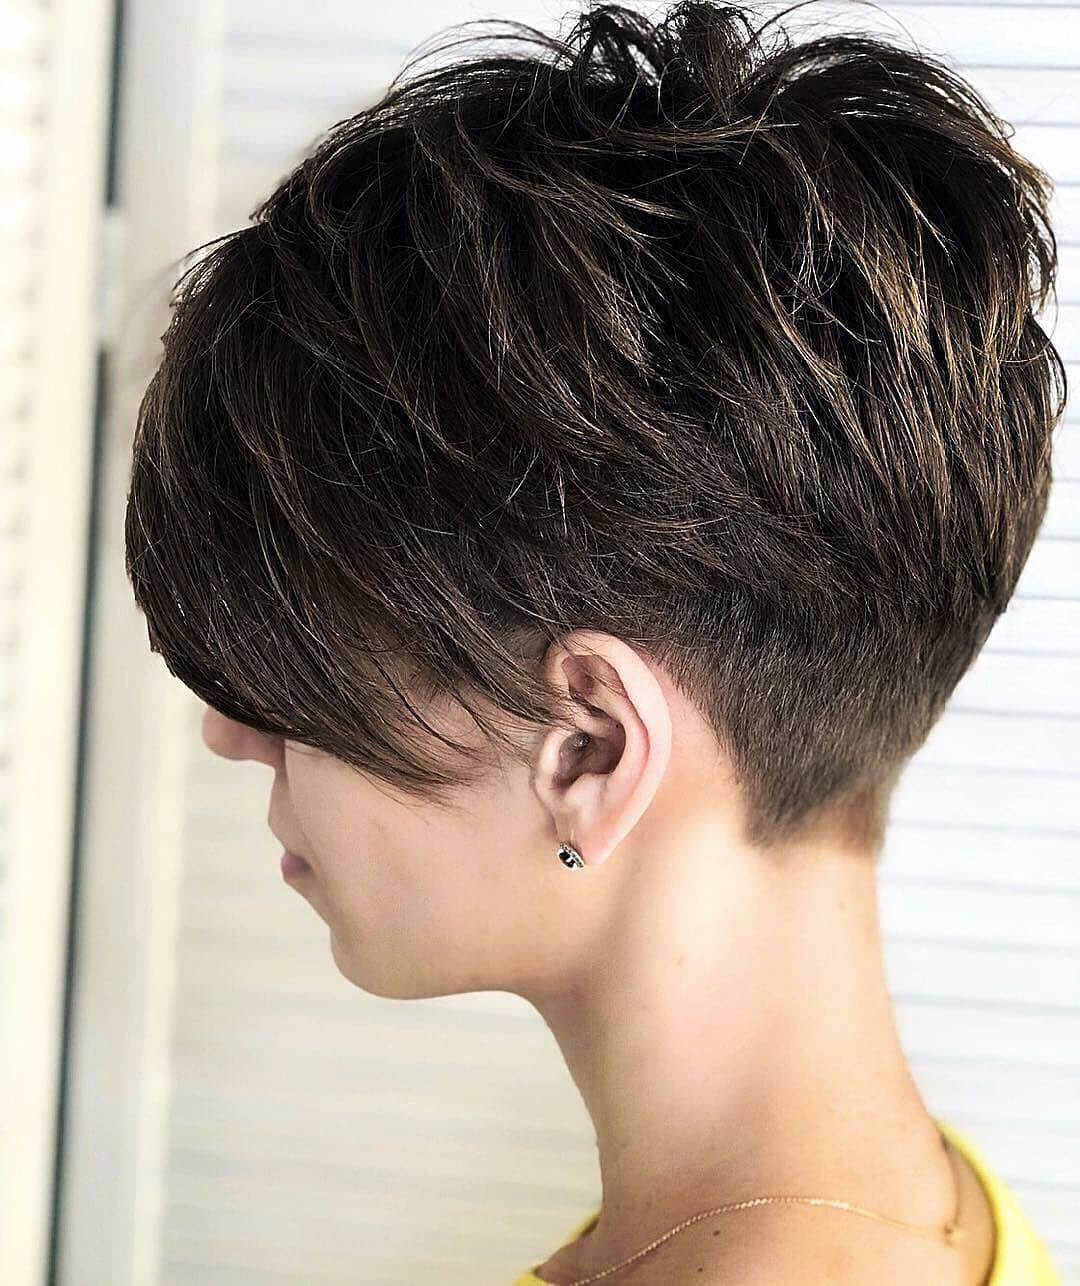 World Hairdressers On Instagram Coloristsochi Carameli Sochi Kaypro Russia Kaypro Moscow P Hair Styles Thick Hair Styles Pixie Haircut For Thick Hair